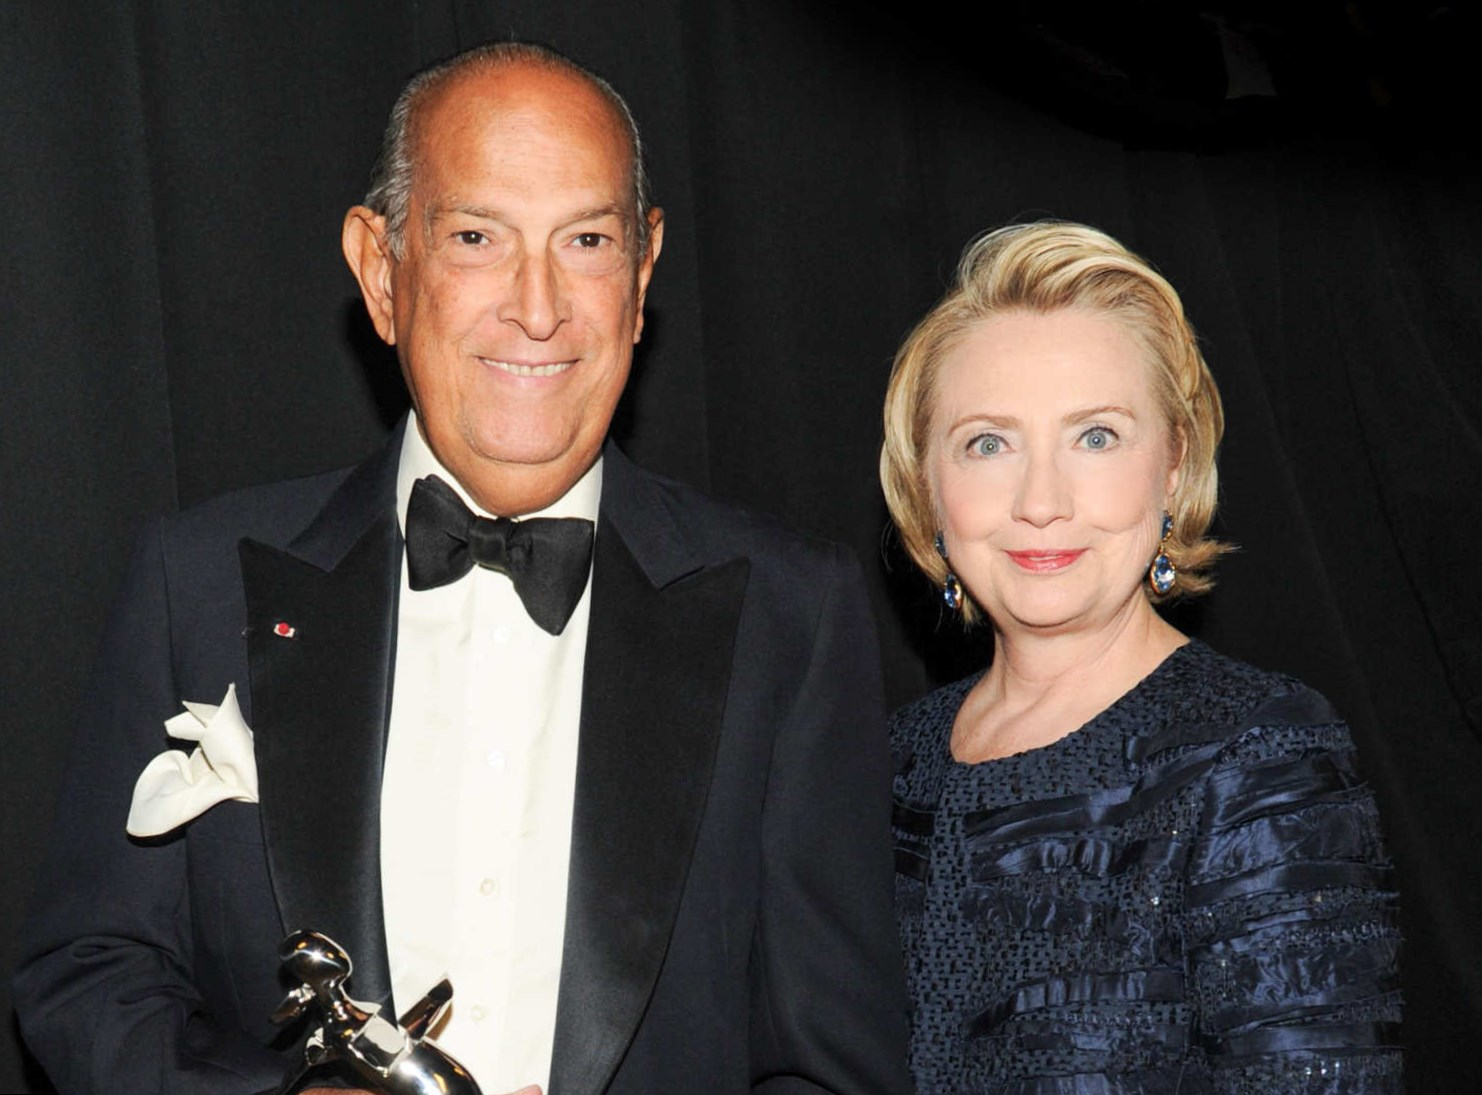 Hillary Clinton Hair Celebrity Hair Changes. Hillary Clinton and Oscar de la Renta